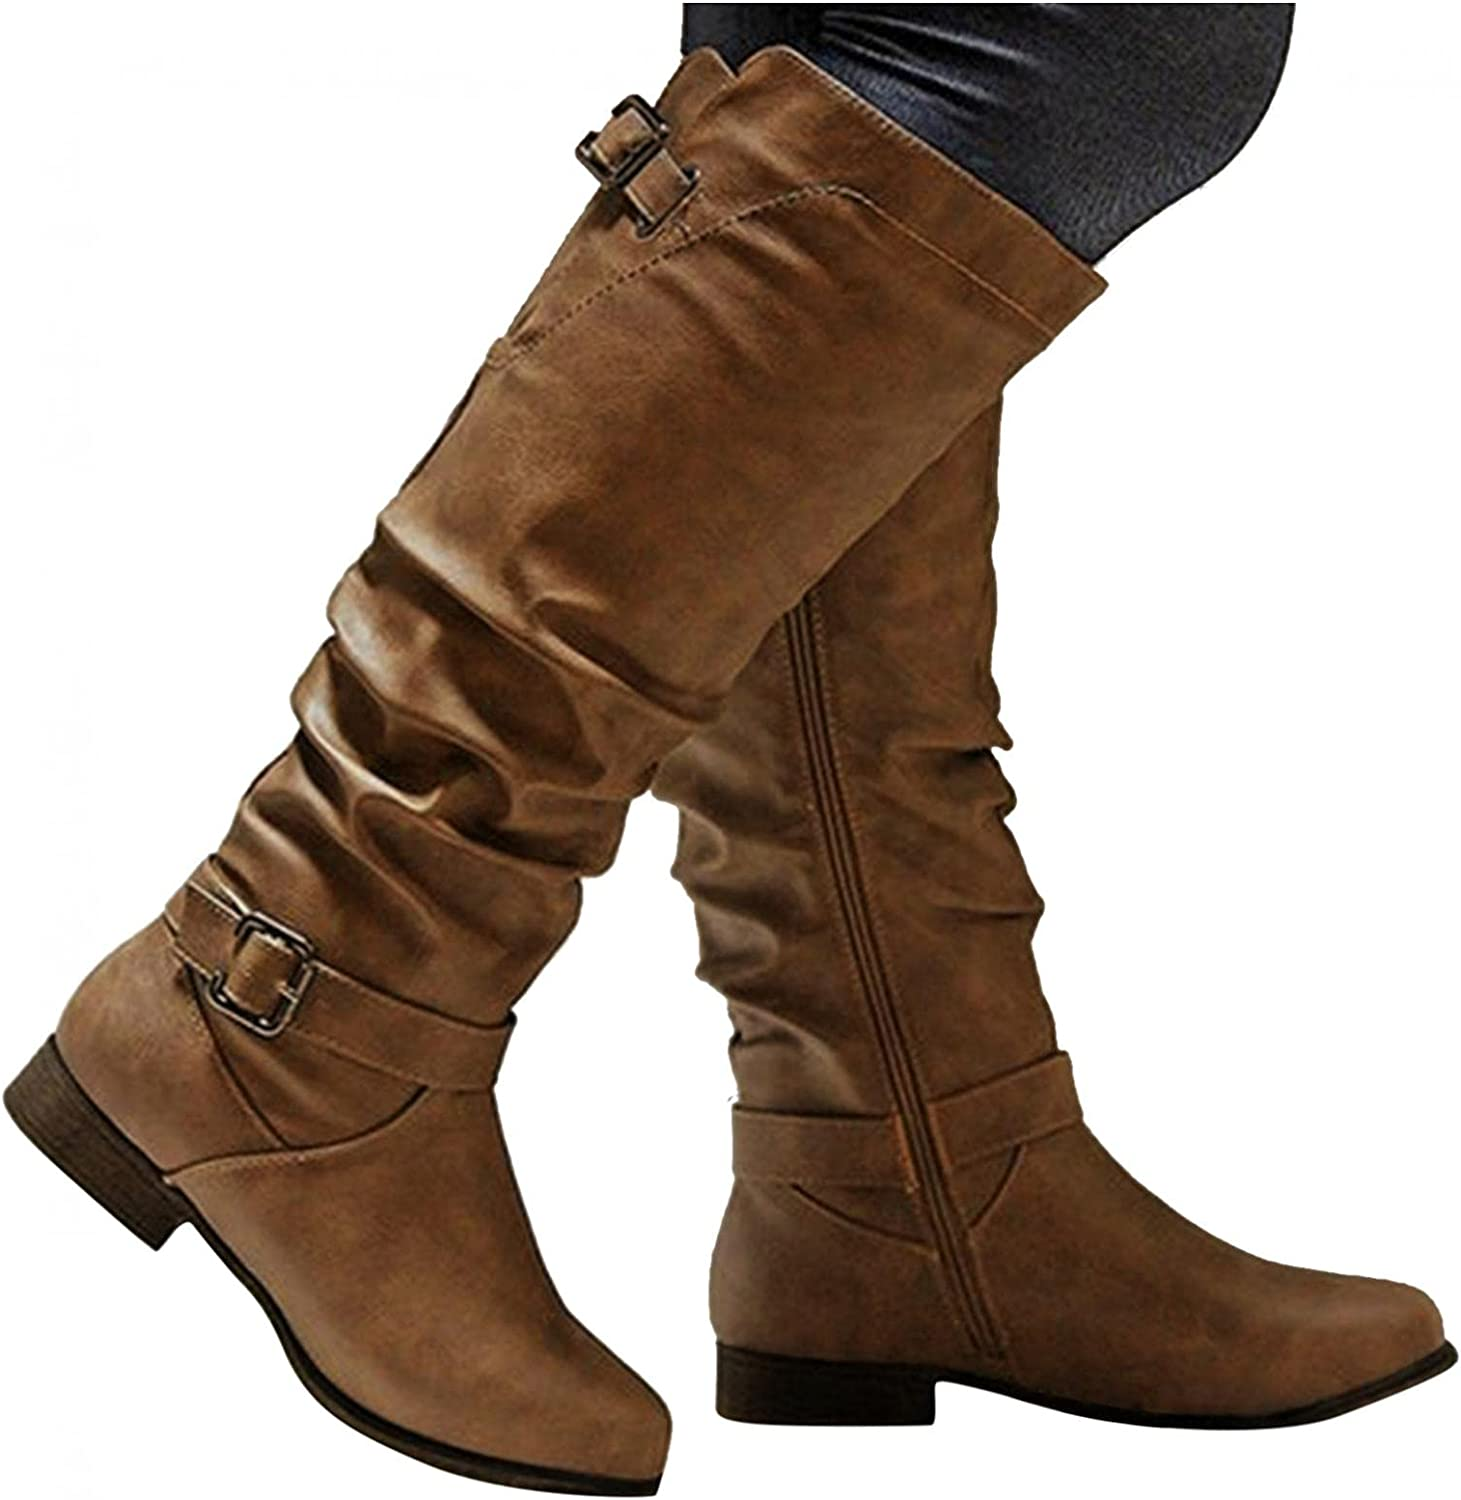 Cowboy Boots for Women Knee High Casual Po Ranking TOP3 Low Be super welcome Heel Womens